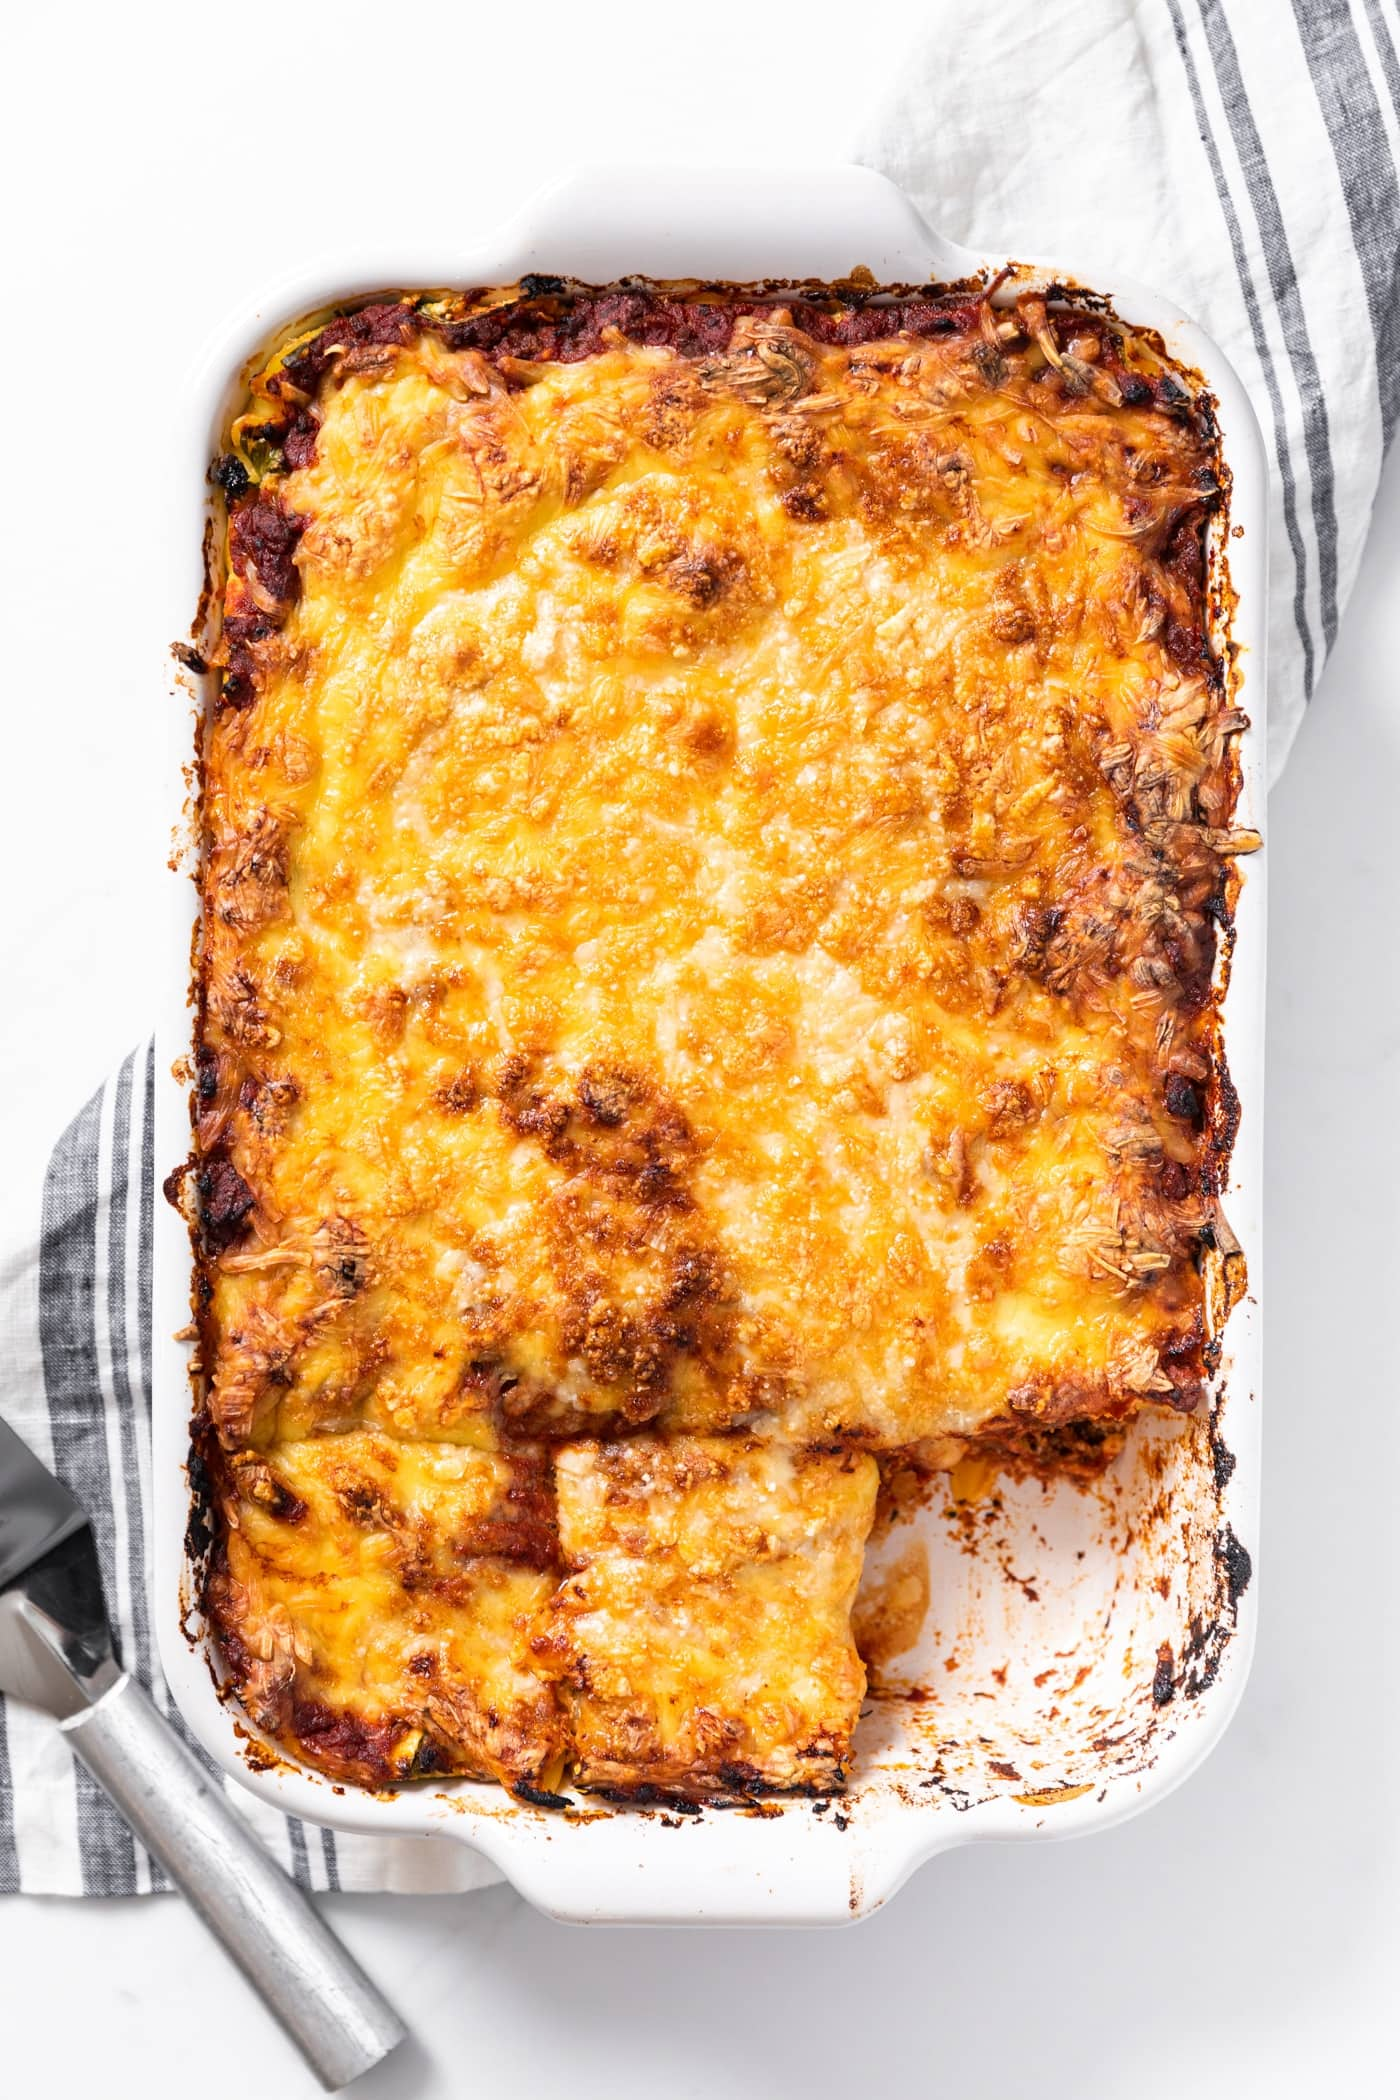 Top down view of large white pan filled with homemade lasagna with golden cheese on top and one piece missing